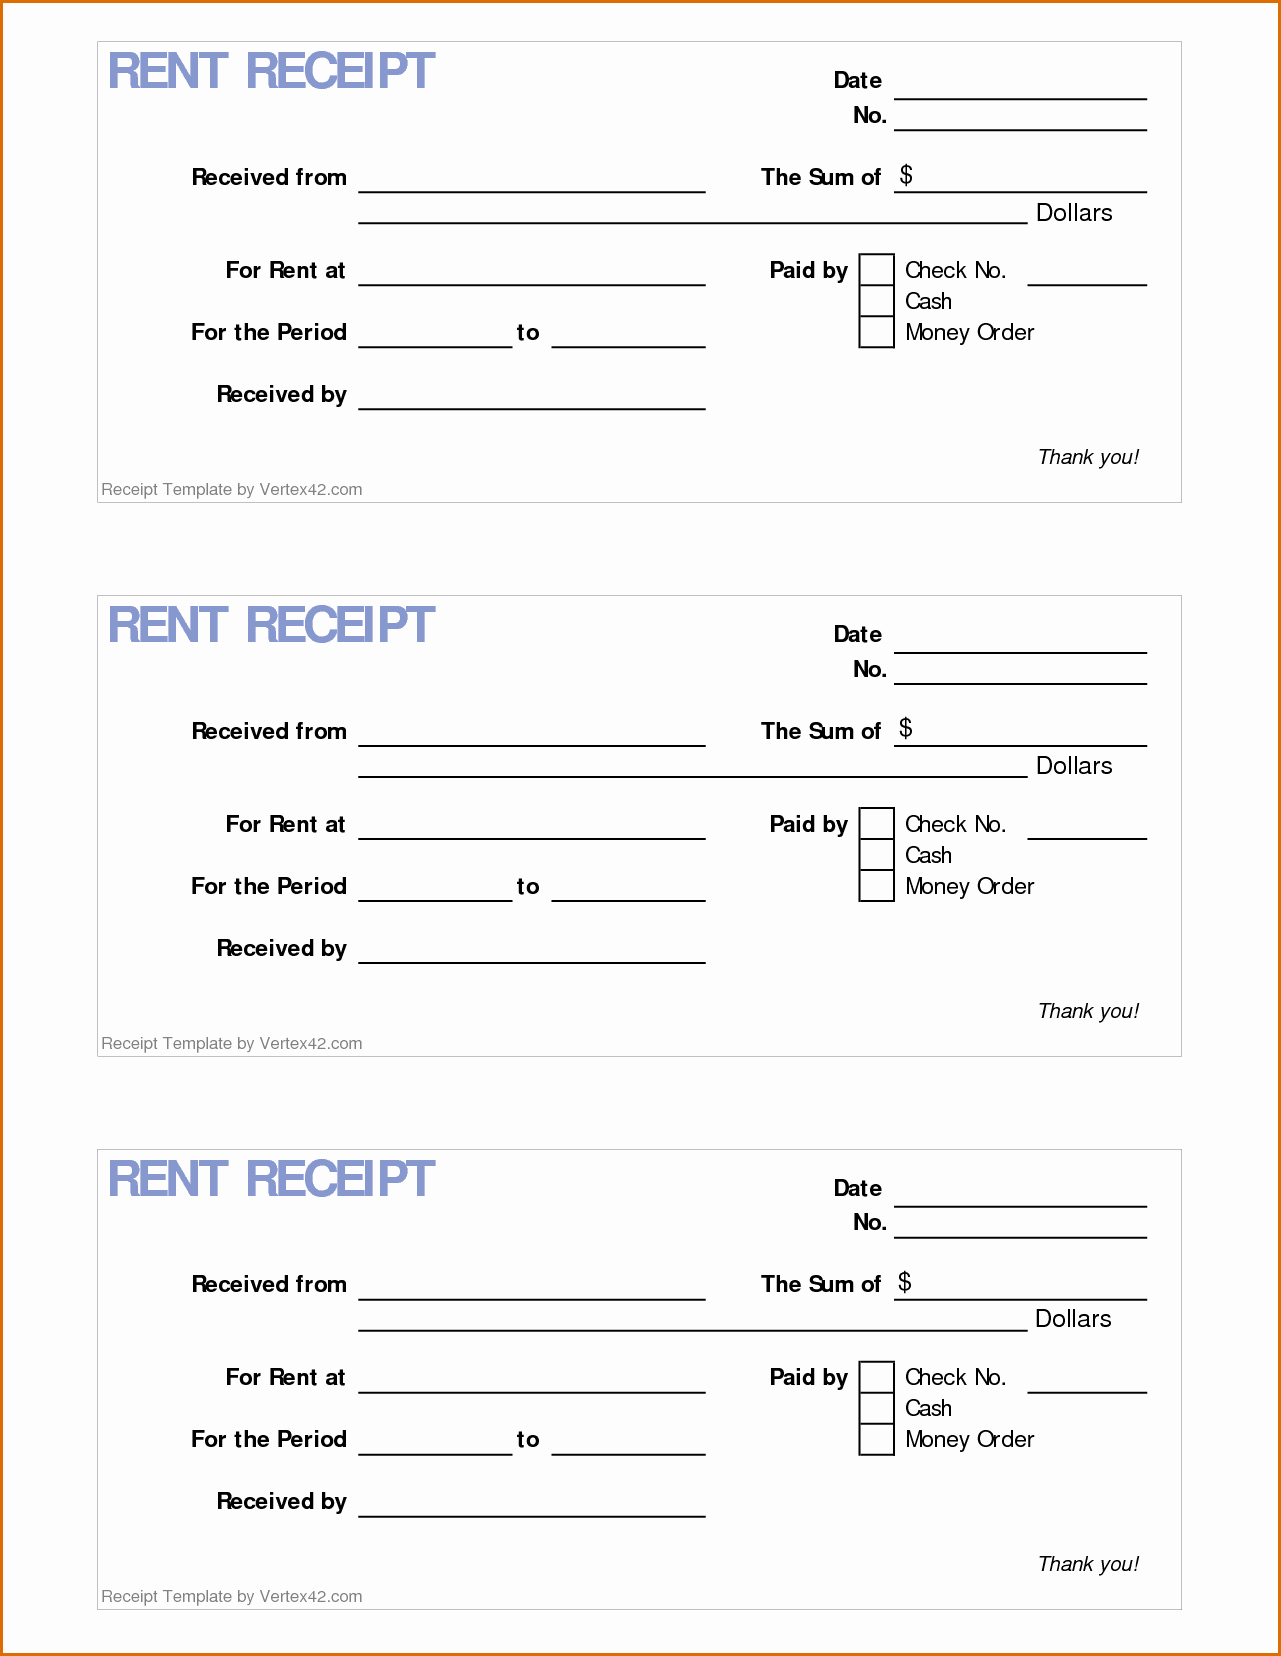 Rental Receipt Template Pdf Inspirational 4 Printable Rent Receipt